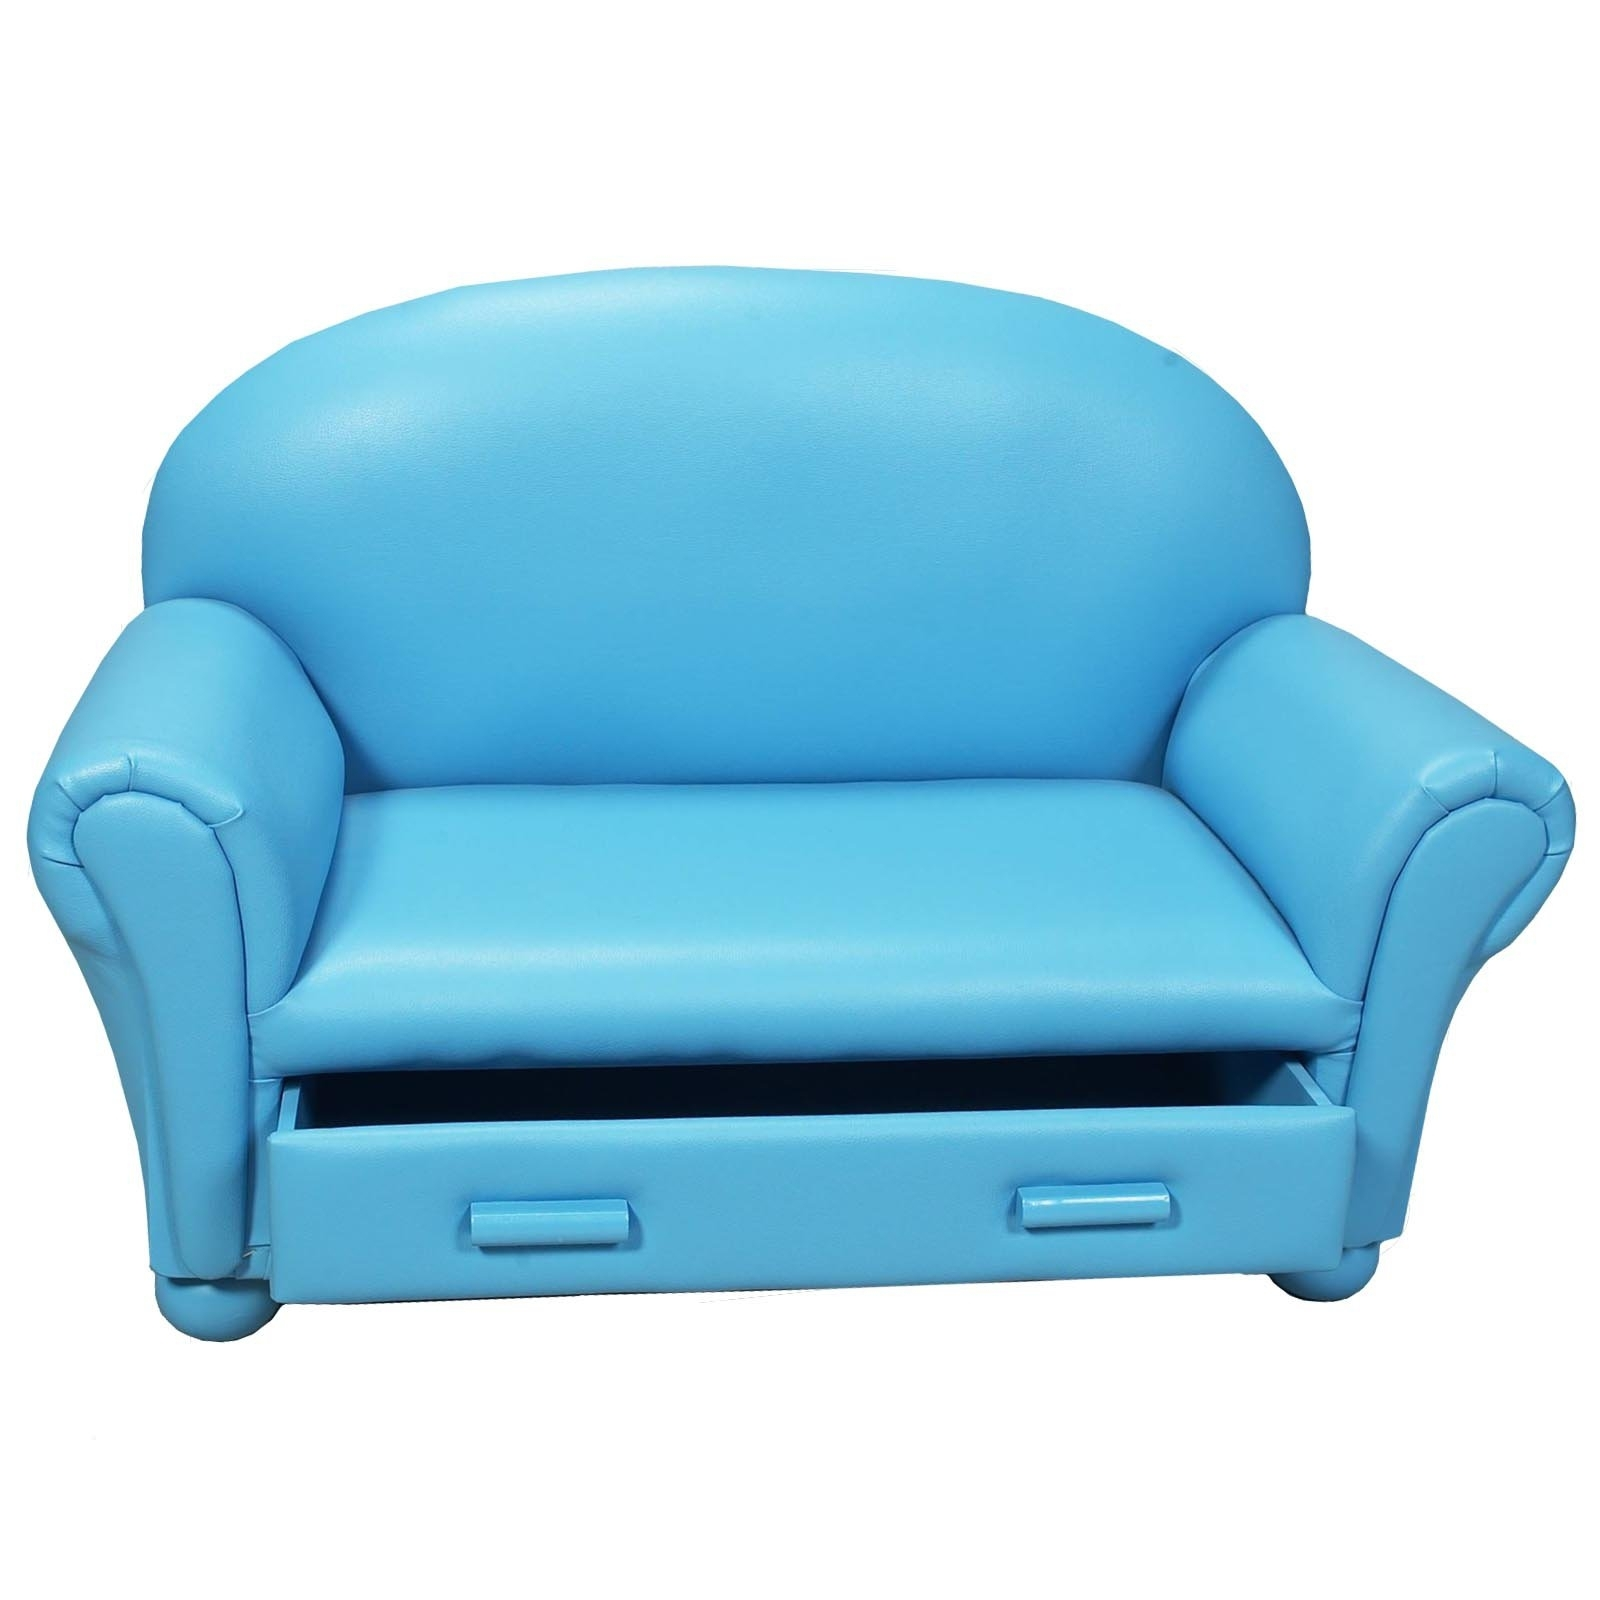 Childrens Sofa With Storage Drawer – Walmart Within Childrens Sofas (View 3 of 10)